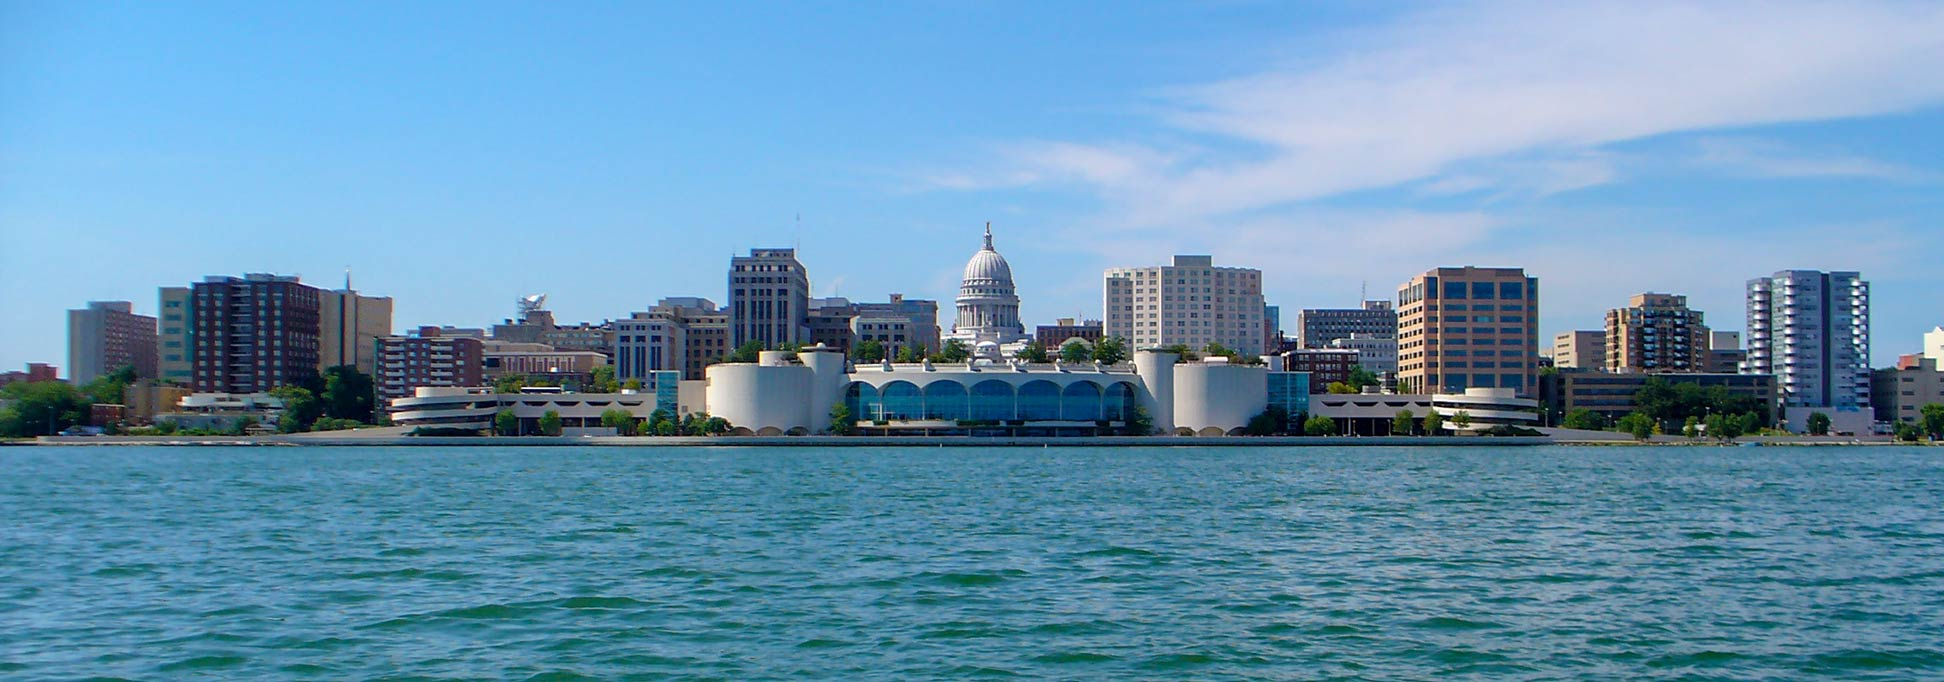 Madison The Capital City Of Wisconsin Usa Nations Online Project